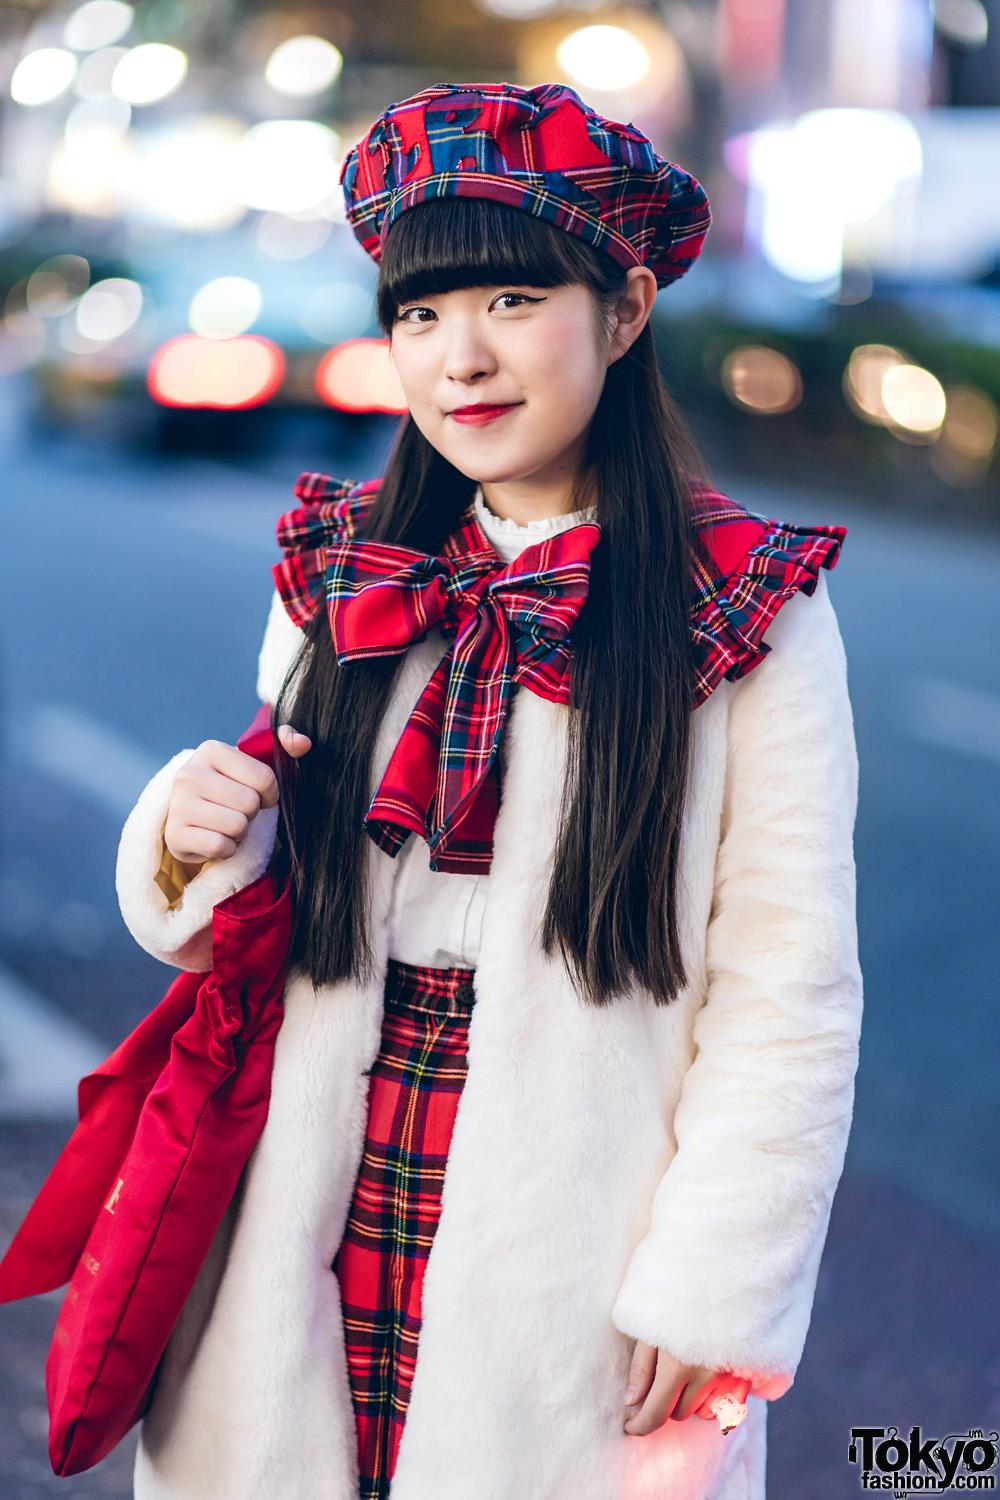 Harajuku Girl Street Style w/ Plaid HEIHEI Beret, Plaid Bow Collar, Plaid Skirt, Faux Fur Jacket & Maison De Fleur Bag